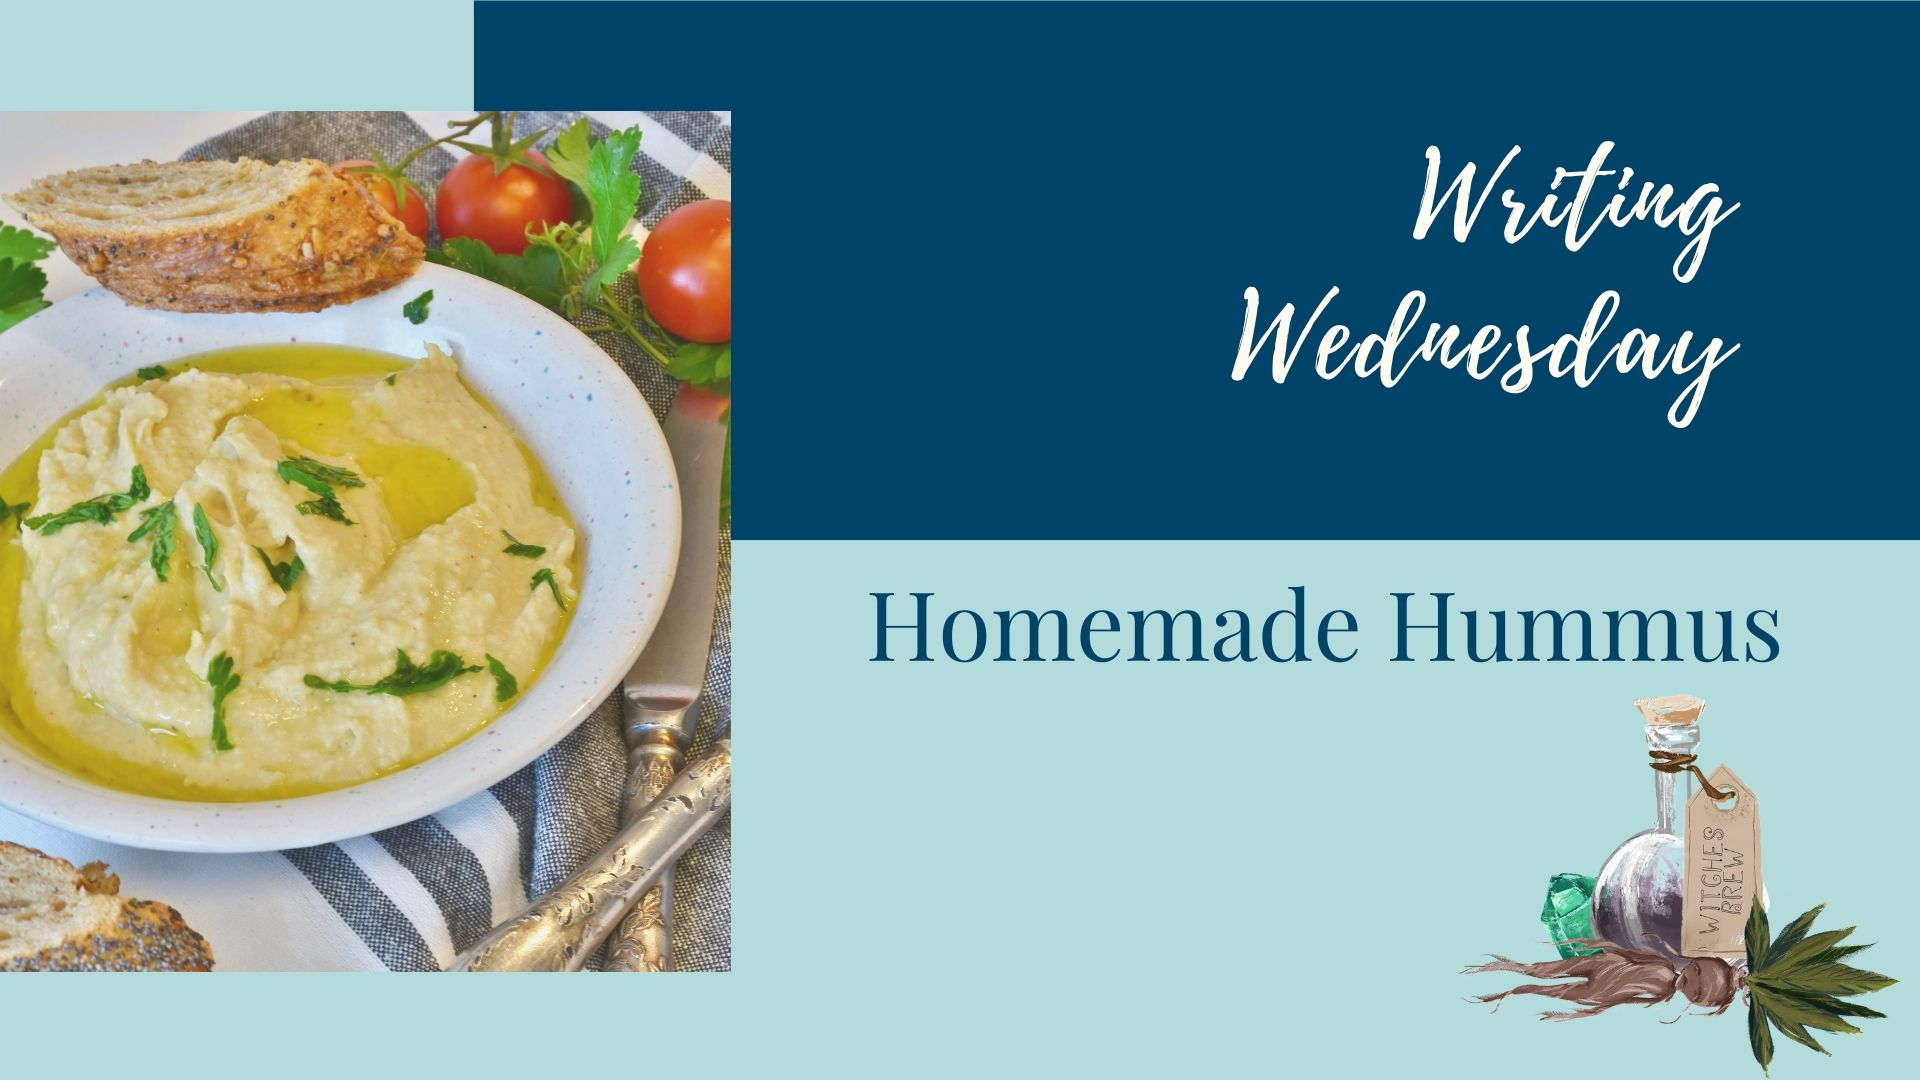 Writing Wednesday: Homemade Hummus